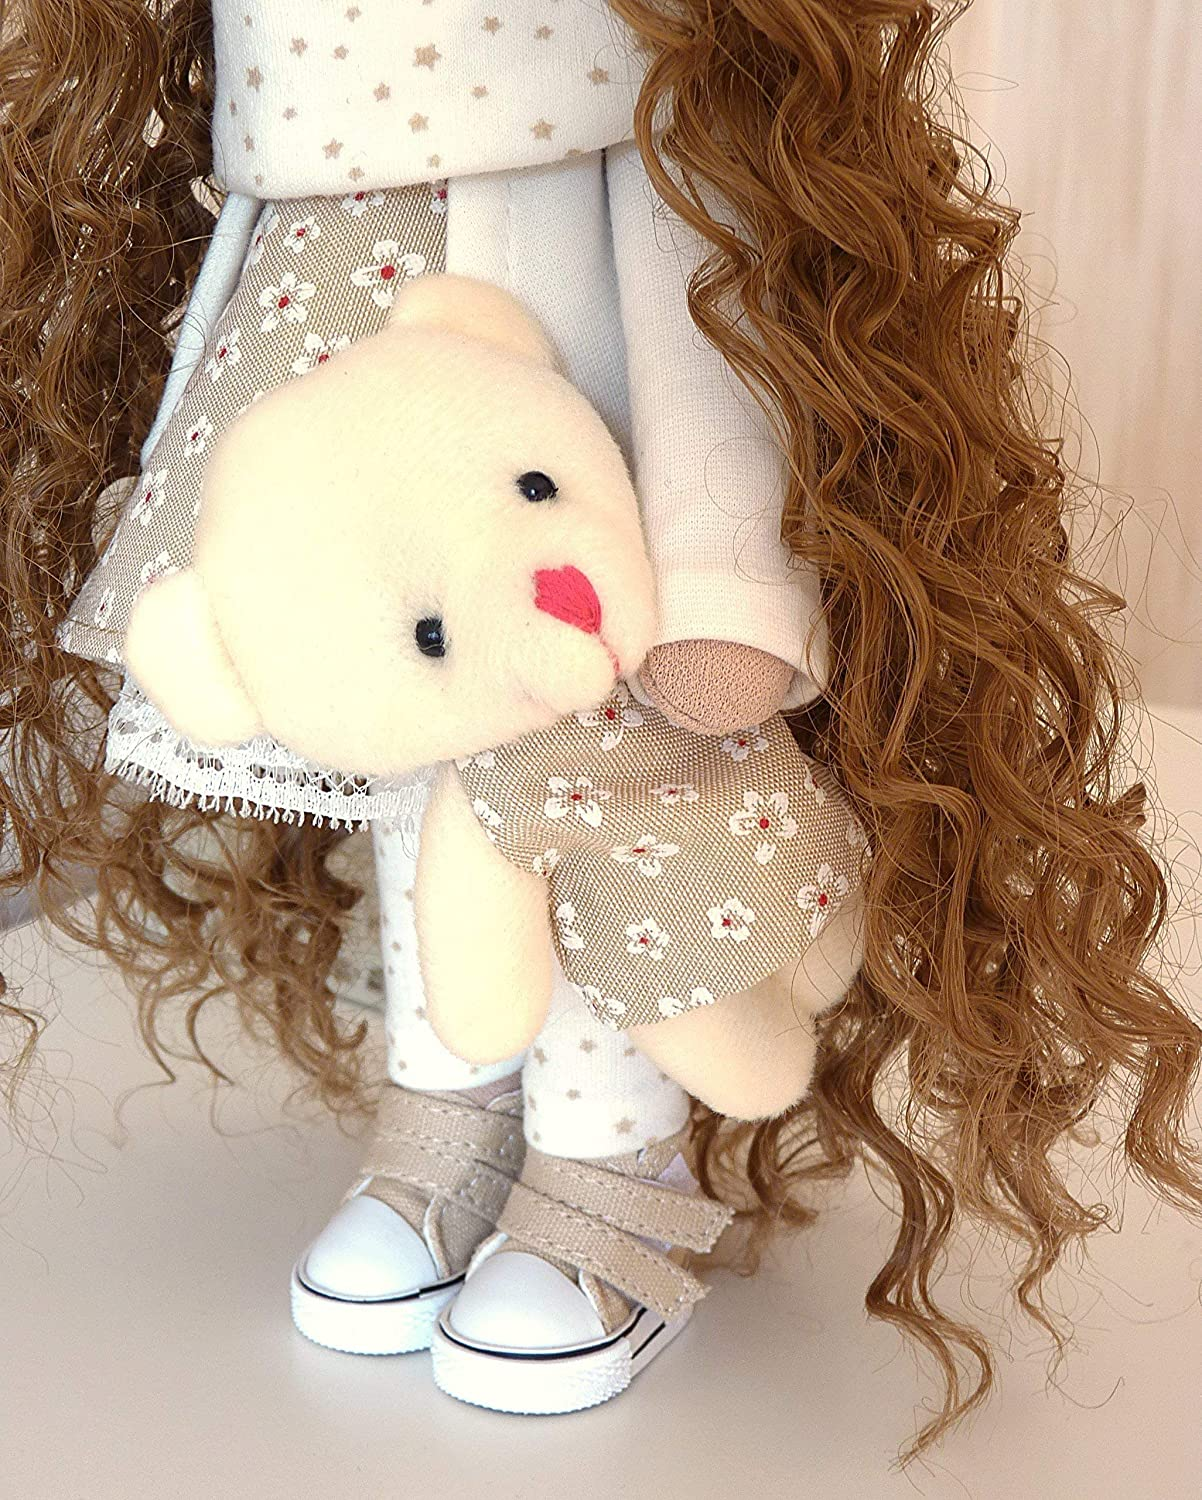 Fabric Doll Handmade Doll Textile Doll Rag Doll Decoration Doll Interior Doll Handmade Toy Cloth Doll Decor Doll Doll with bear Art Doll